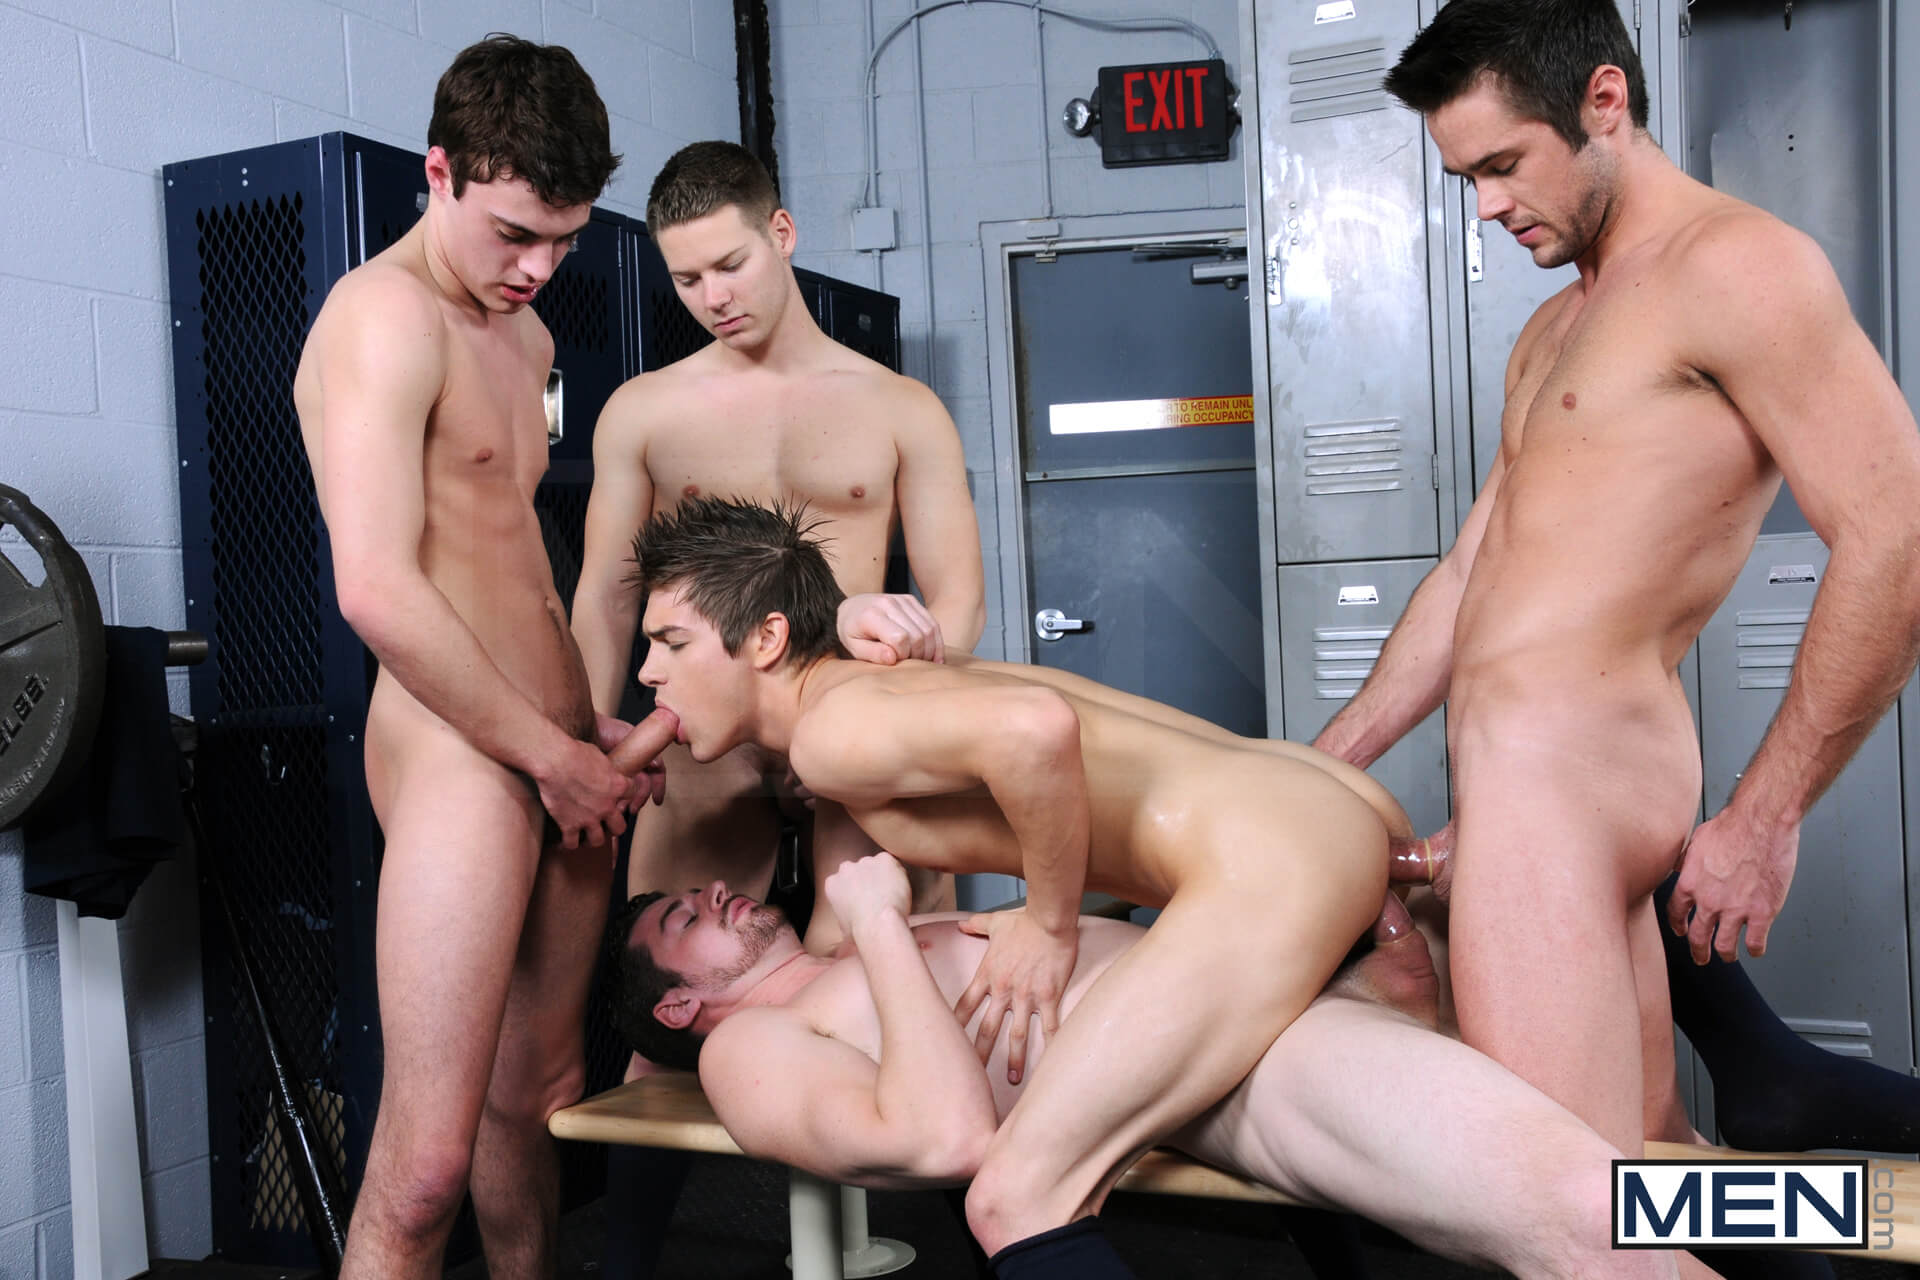 men jizz orgy major league part 3 andrew stark hunter page johnny rapid mike de marko riley banks gay porn blog image 16